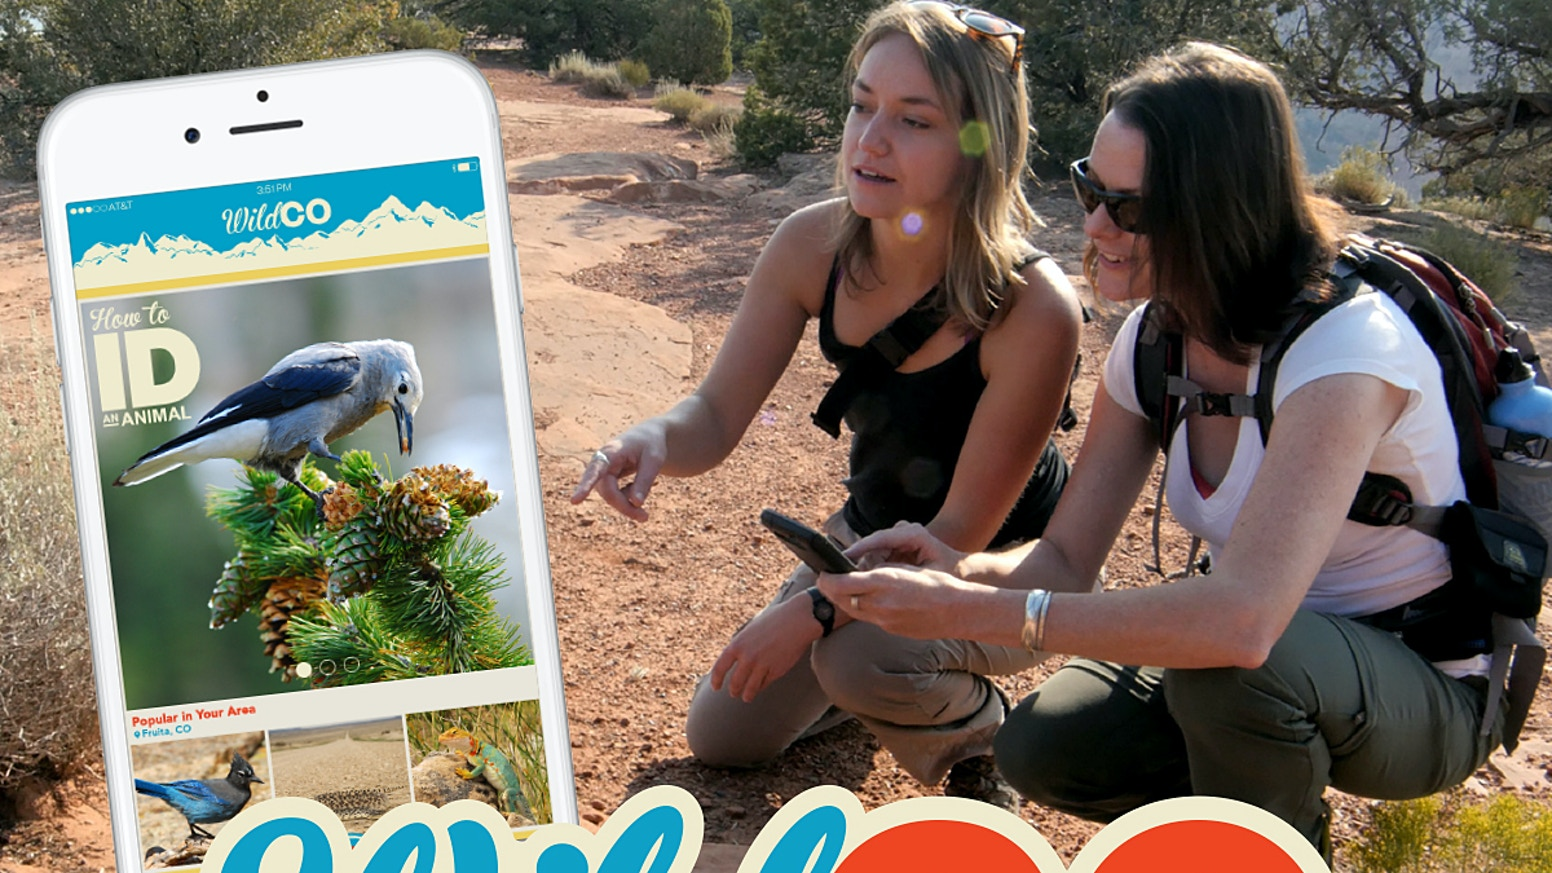 Wild Colorado is an outdoor-recreation mobile app that brings the research power of the library to your smartphone!